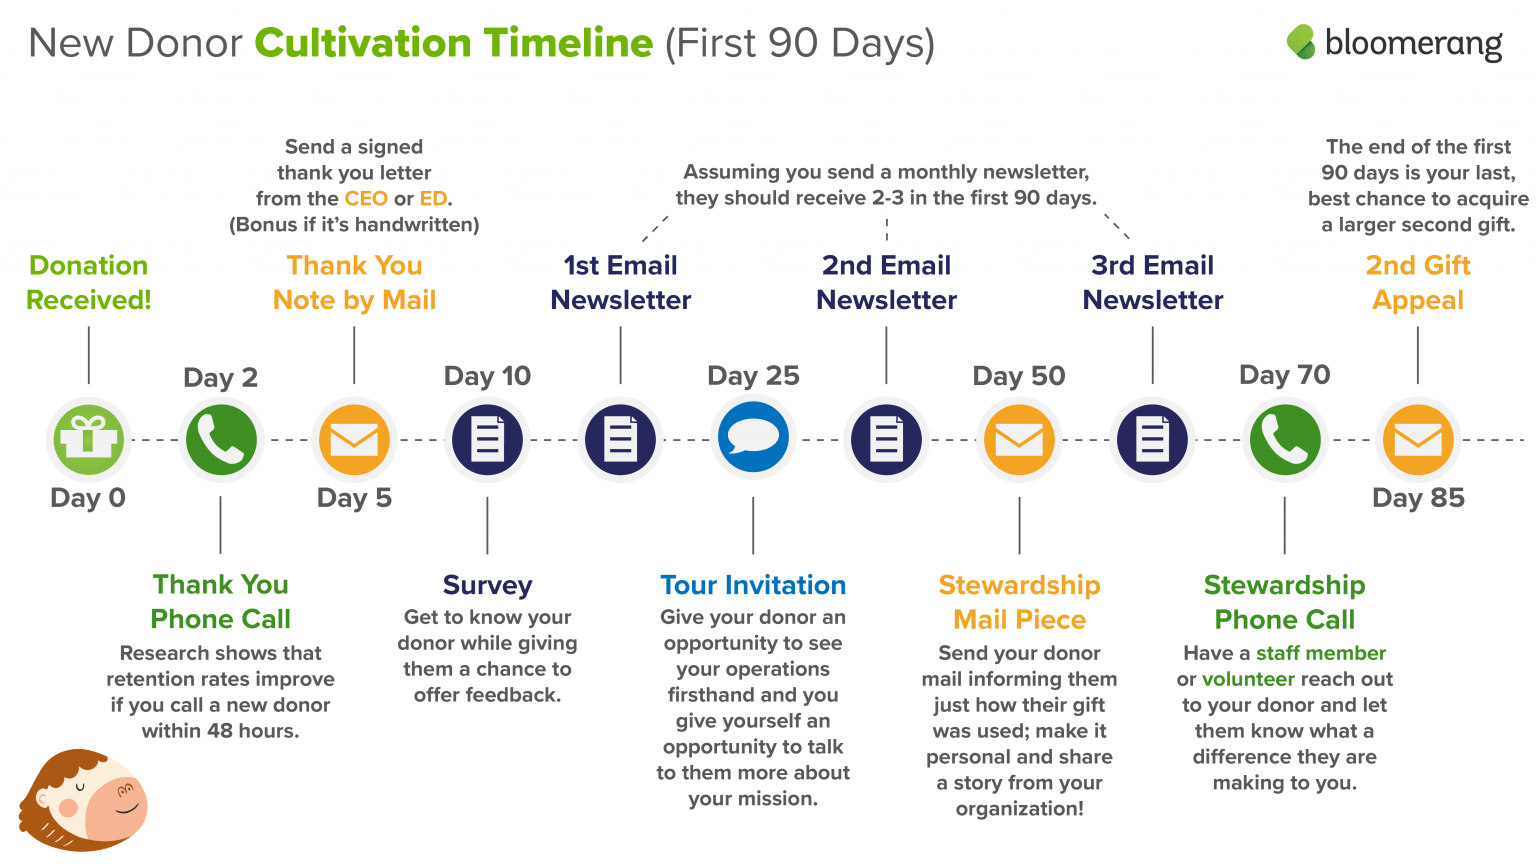 Take a look at a well-planned donor cultivation timeline.